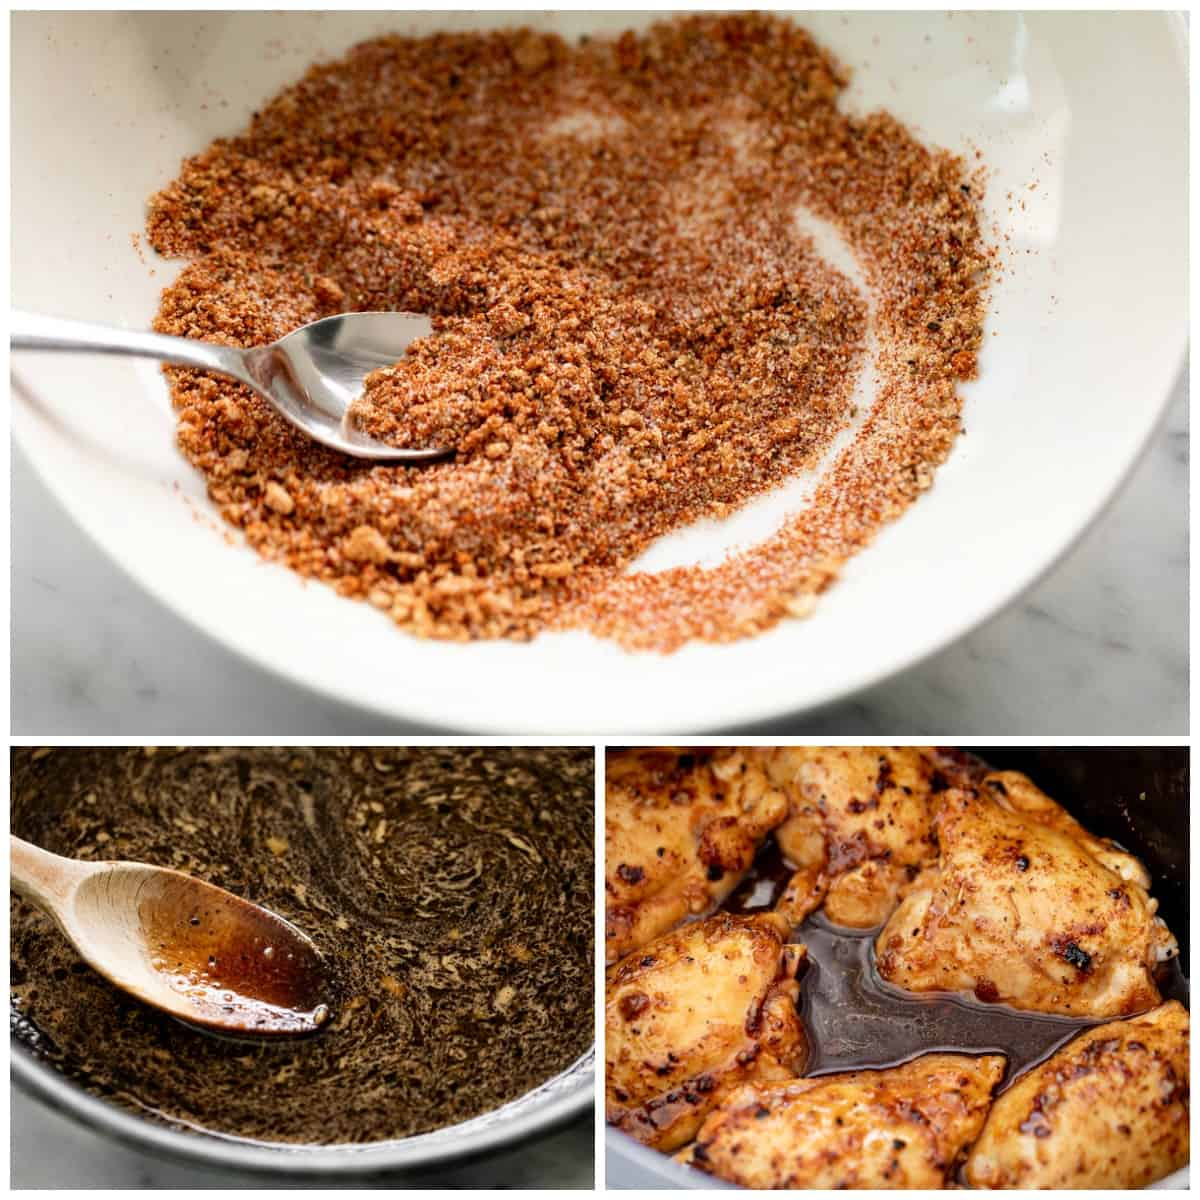 Seasoning and sauce collage for a Slow Cooker Honey Garlic Chicken recipe